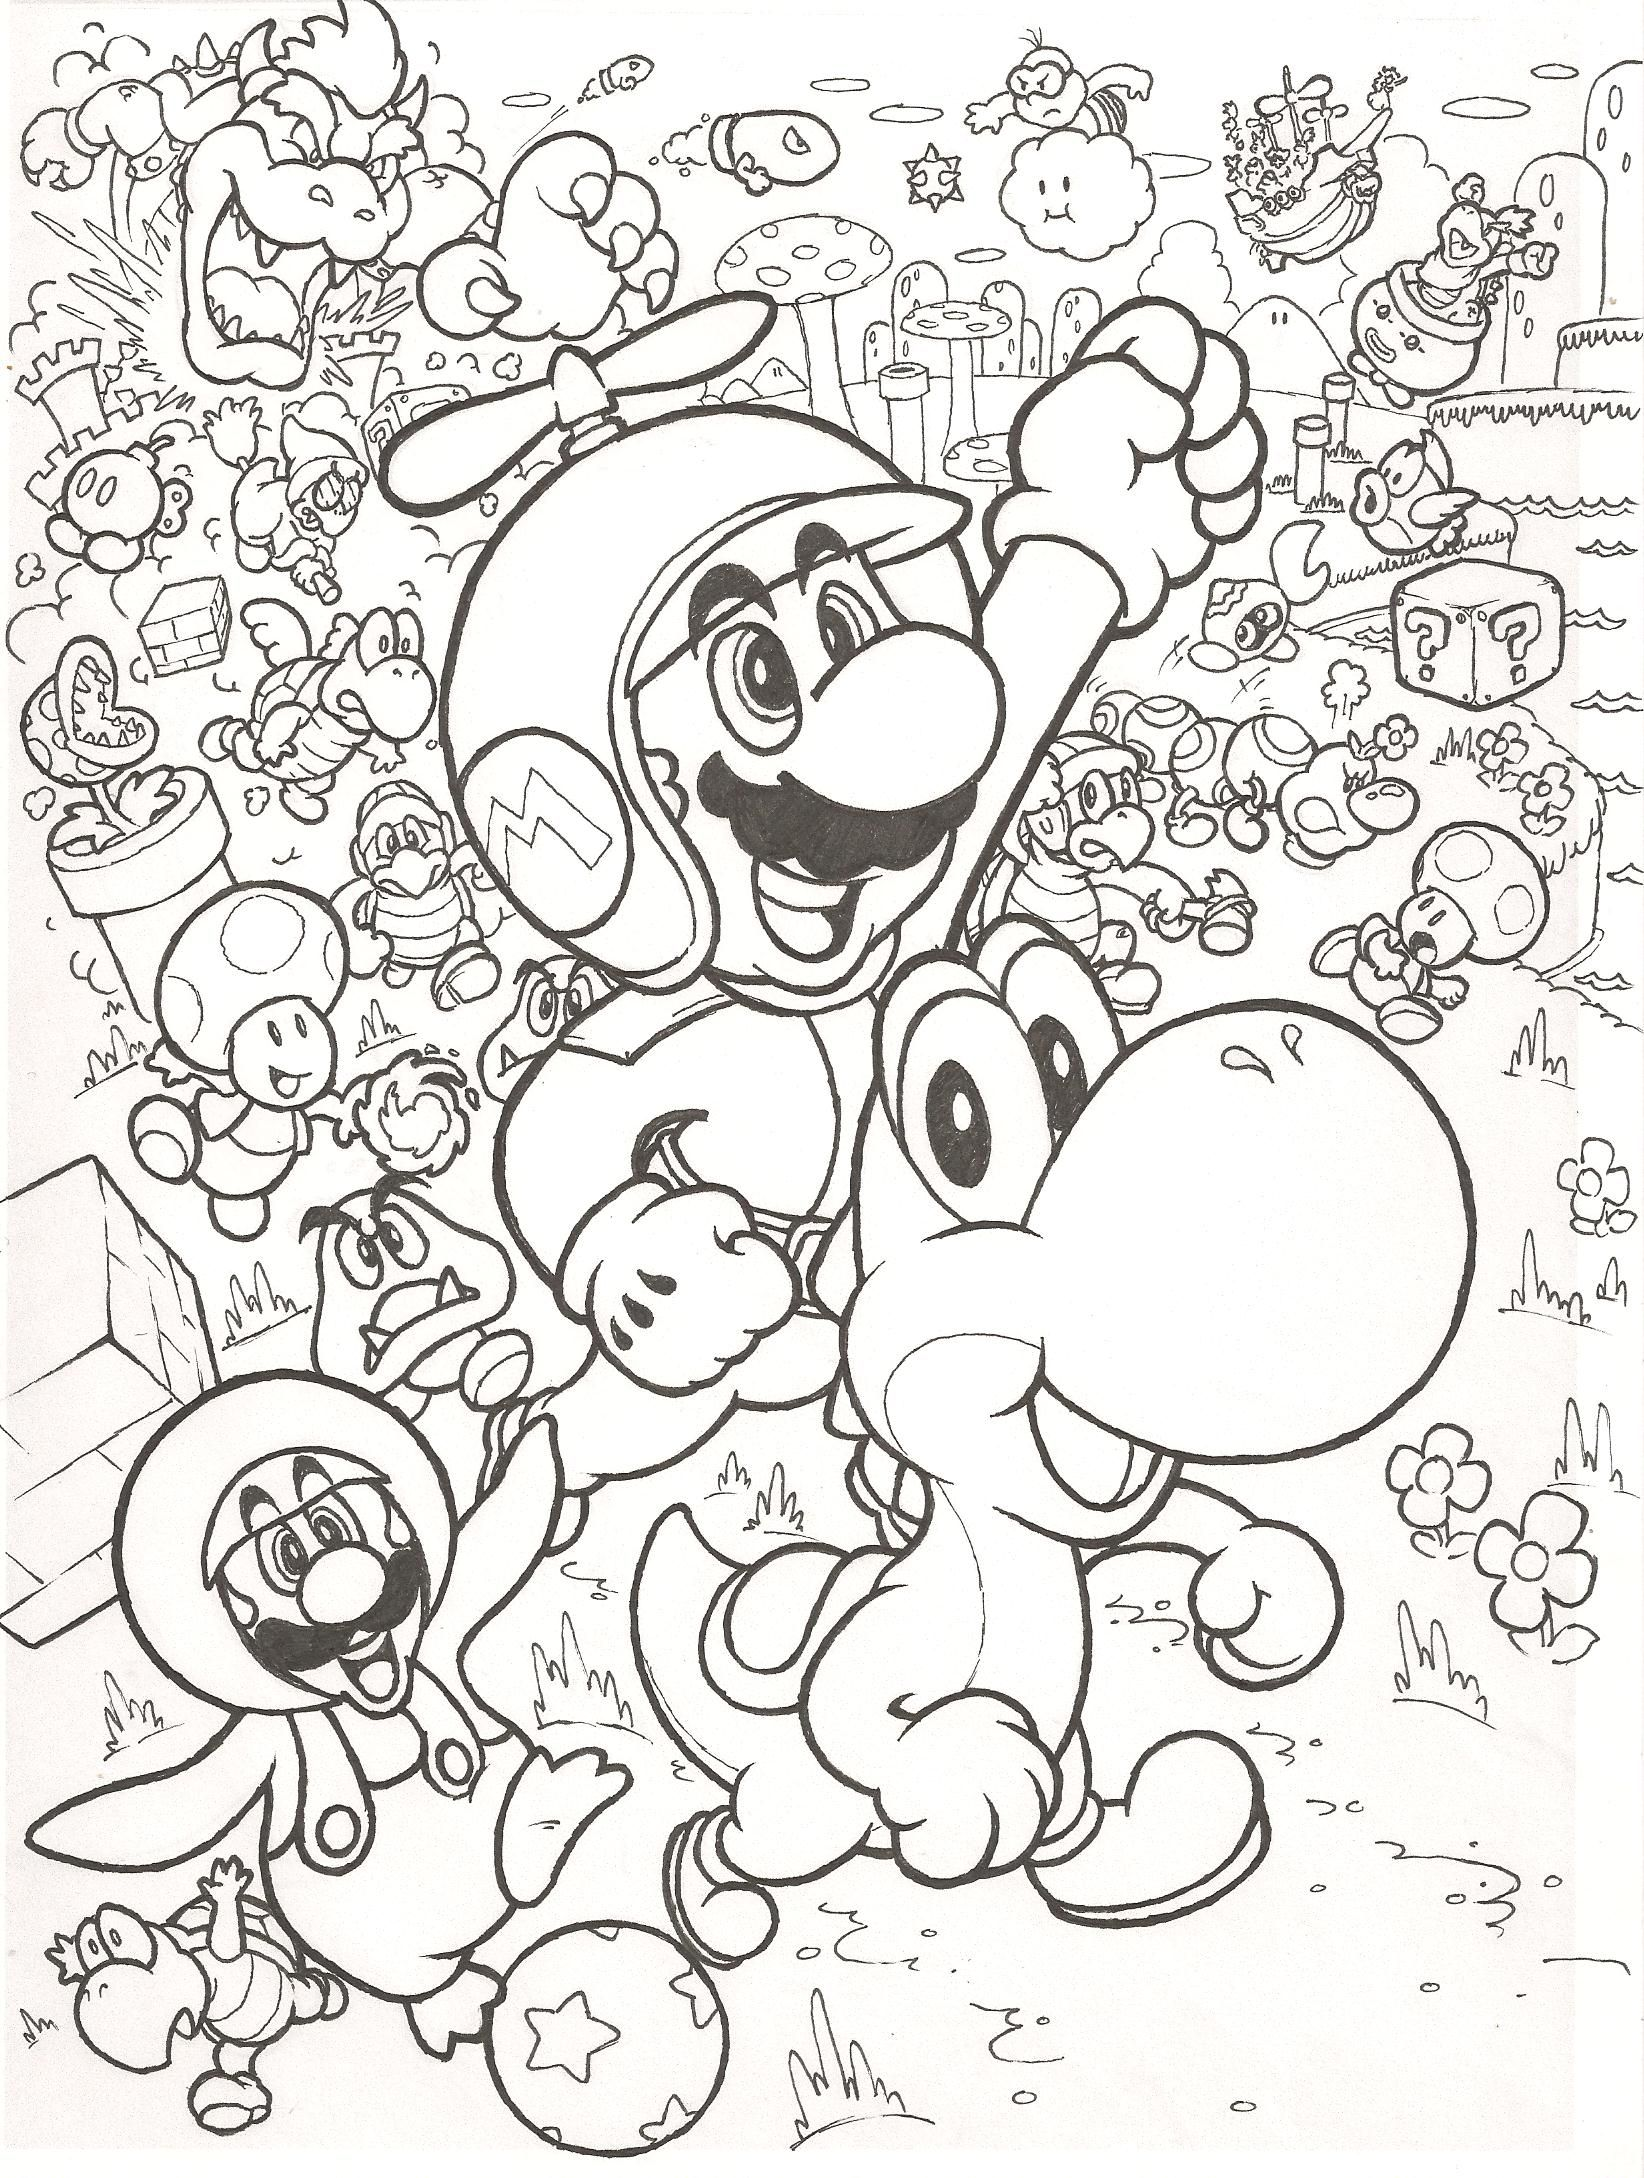 3Ds Super Smash Bros Coloring Pages - Coloring Pages For All Ages ...